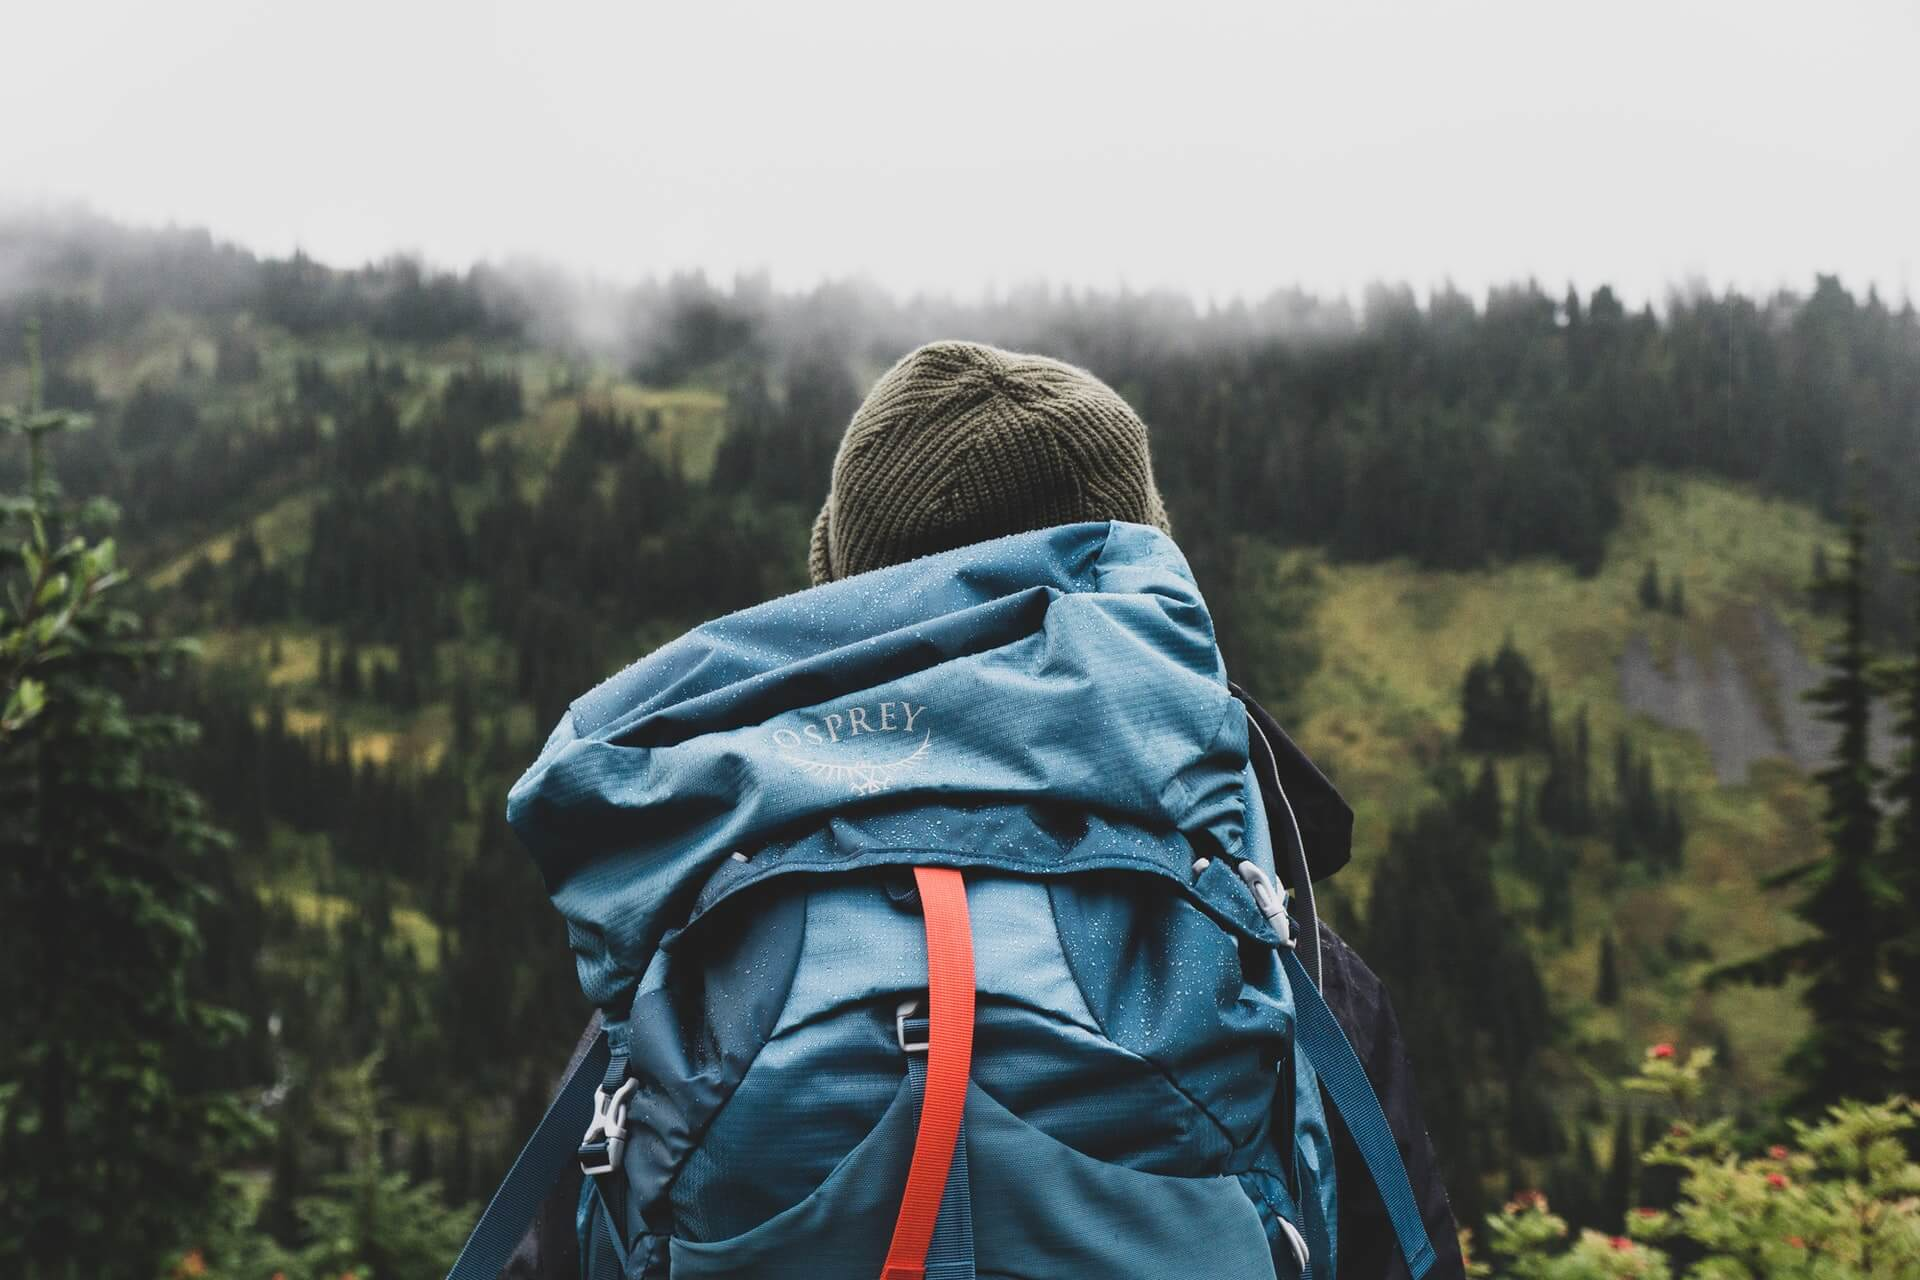 Backpacker shown from behind in a misty forest.